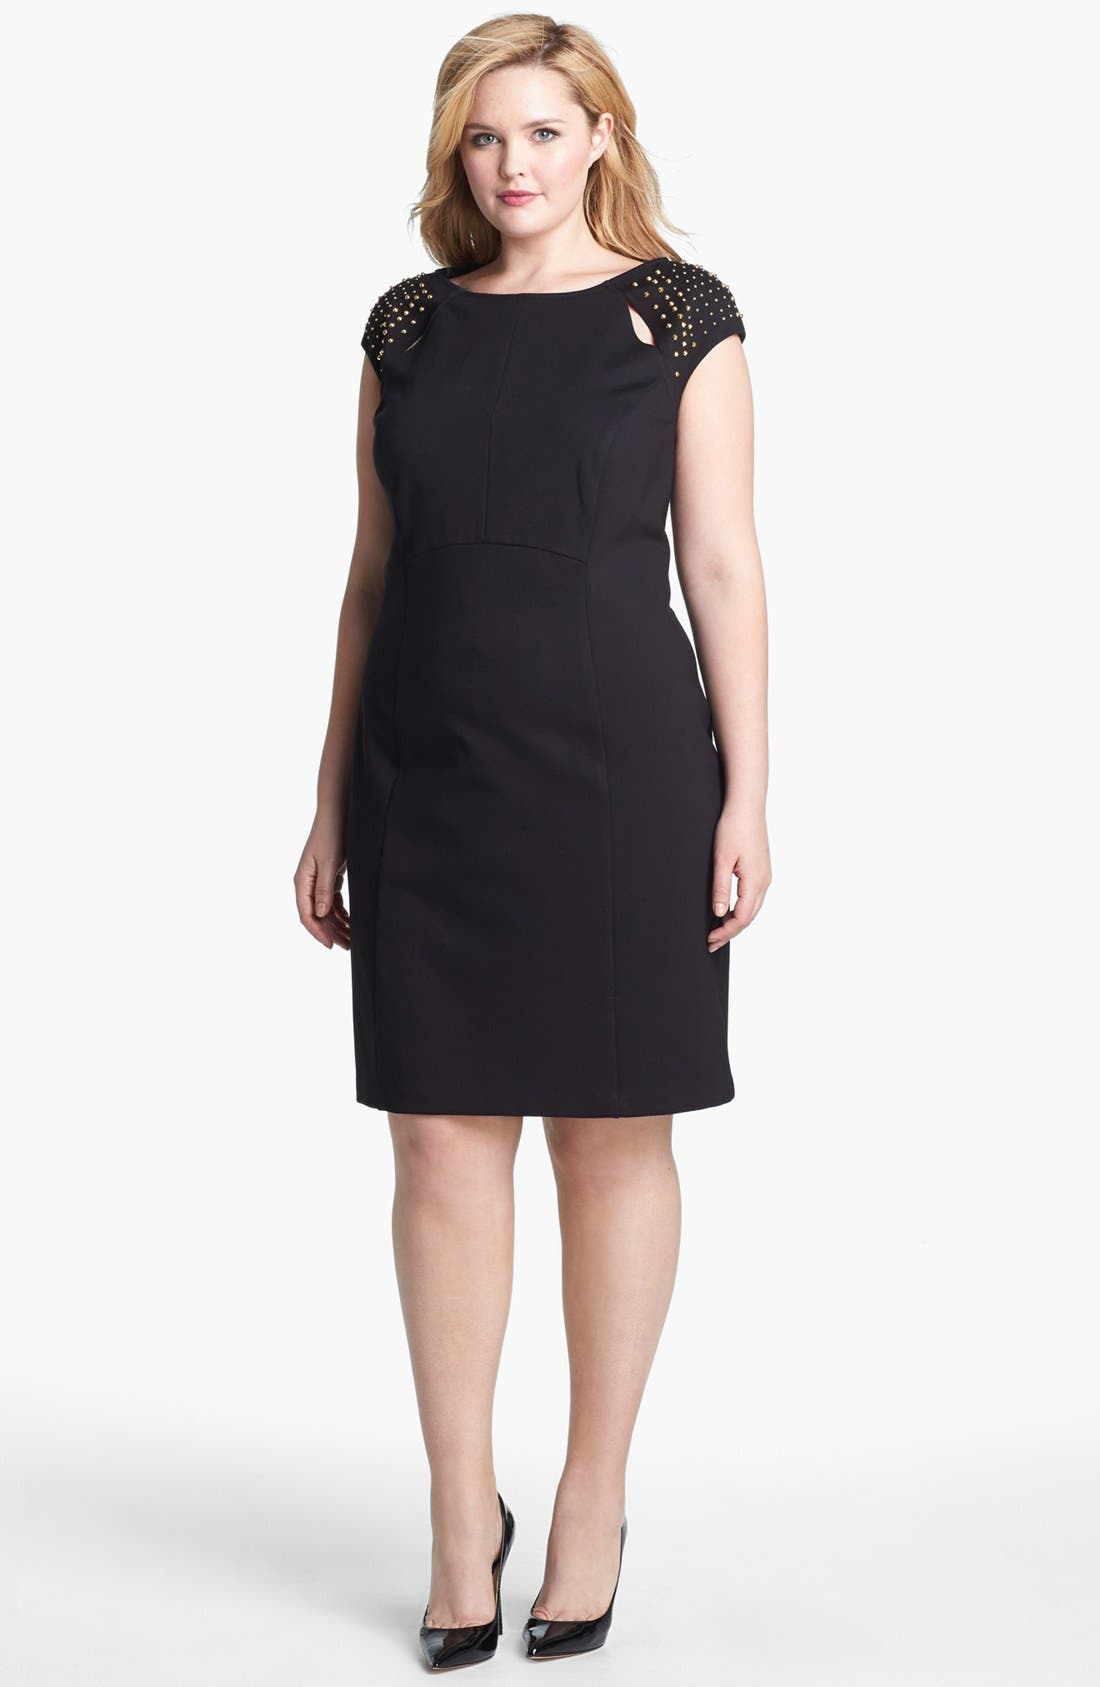 Main Image - ABS by Allen Schwartz Studded Sheath Dress (Plus Size)